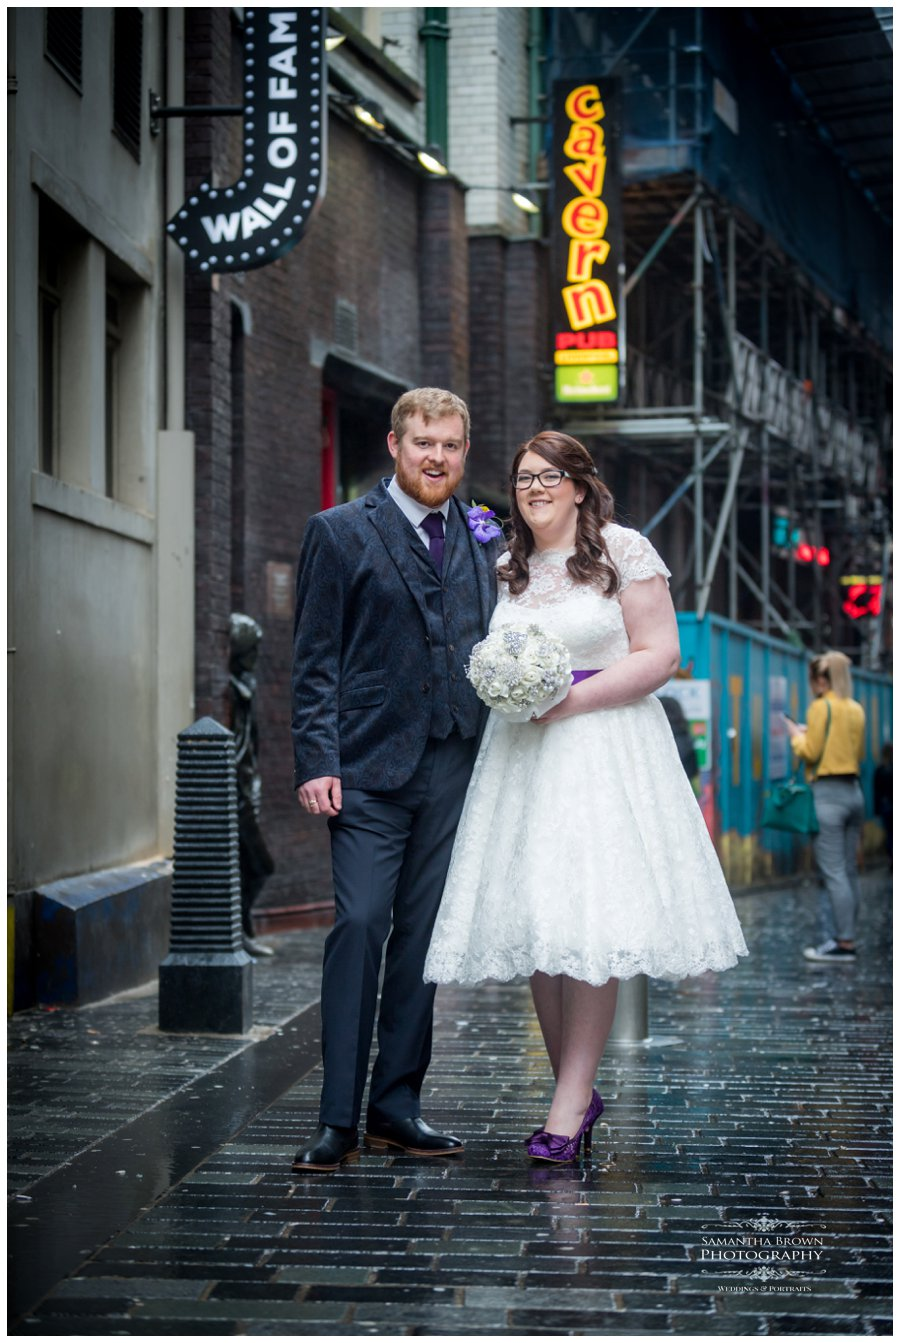 Bride and groom walking down Matthew street